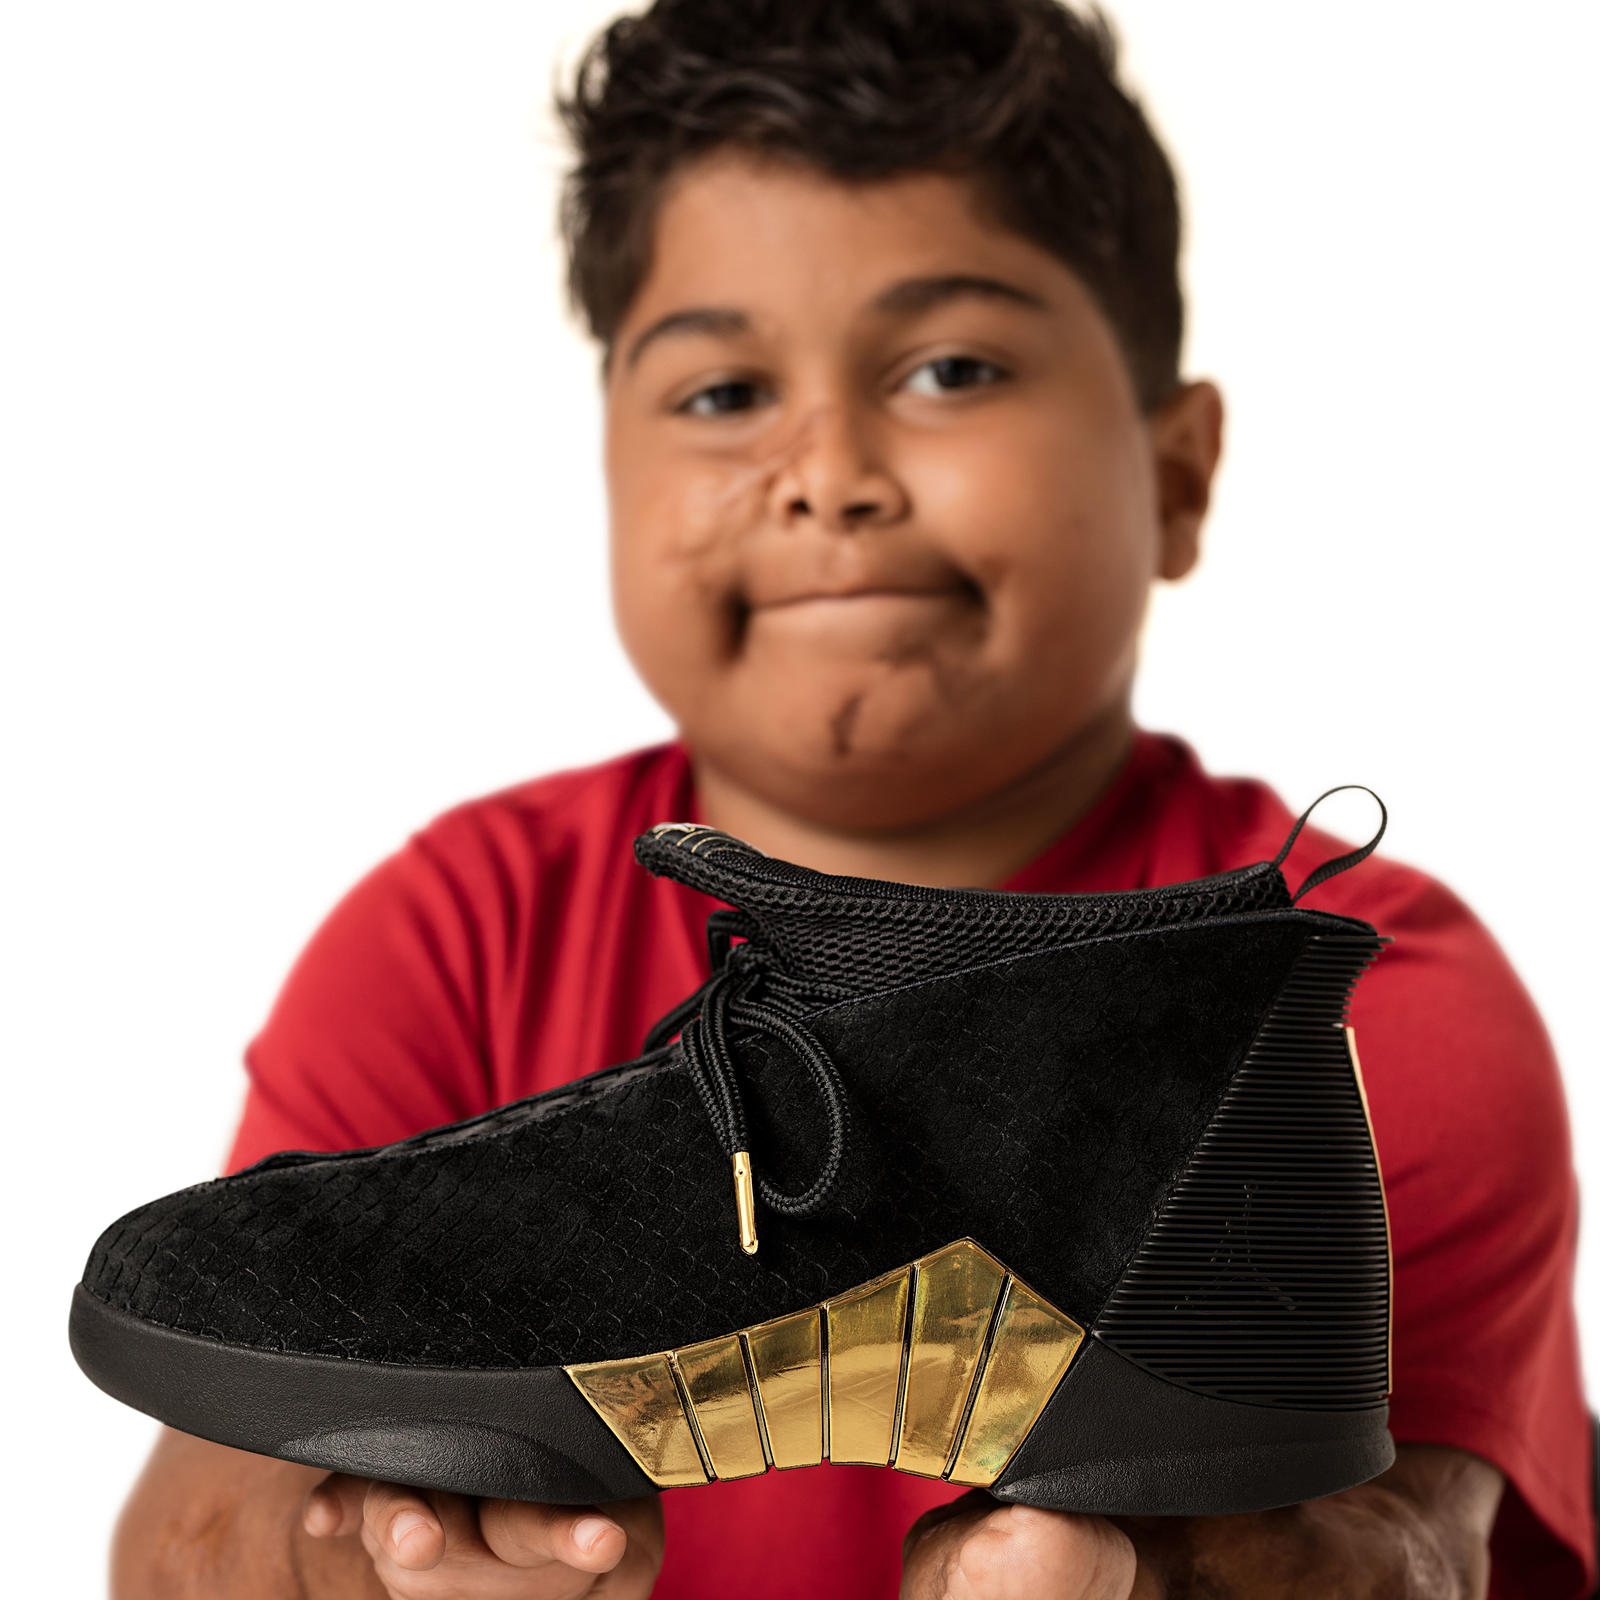 Introducing the Doernbecher Freestyle 2018 Collection 13